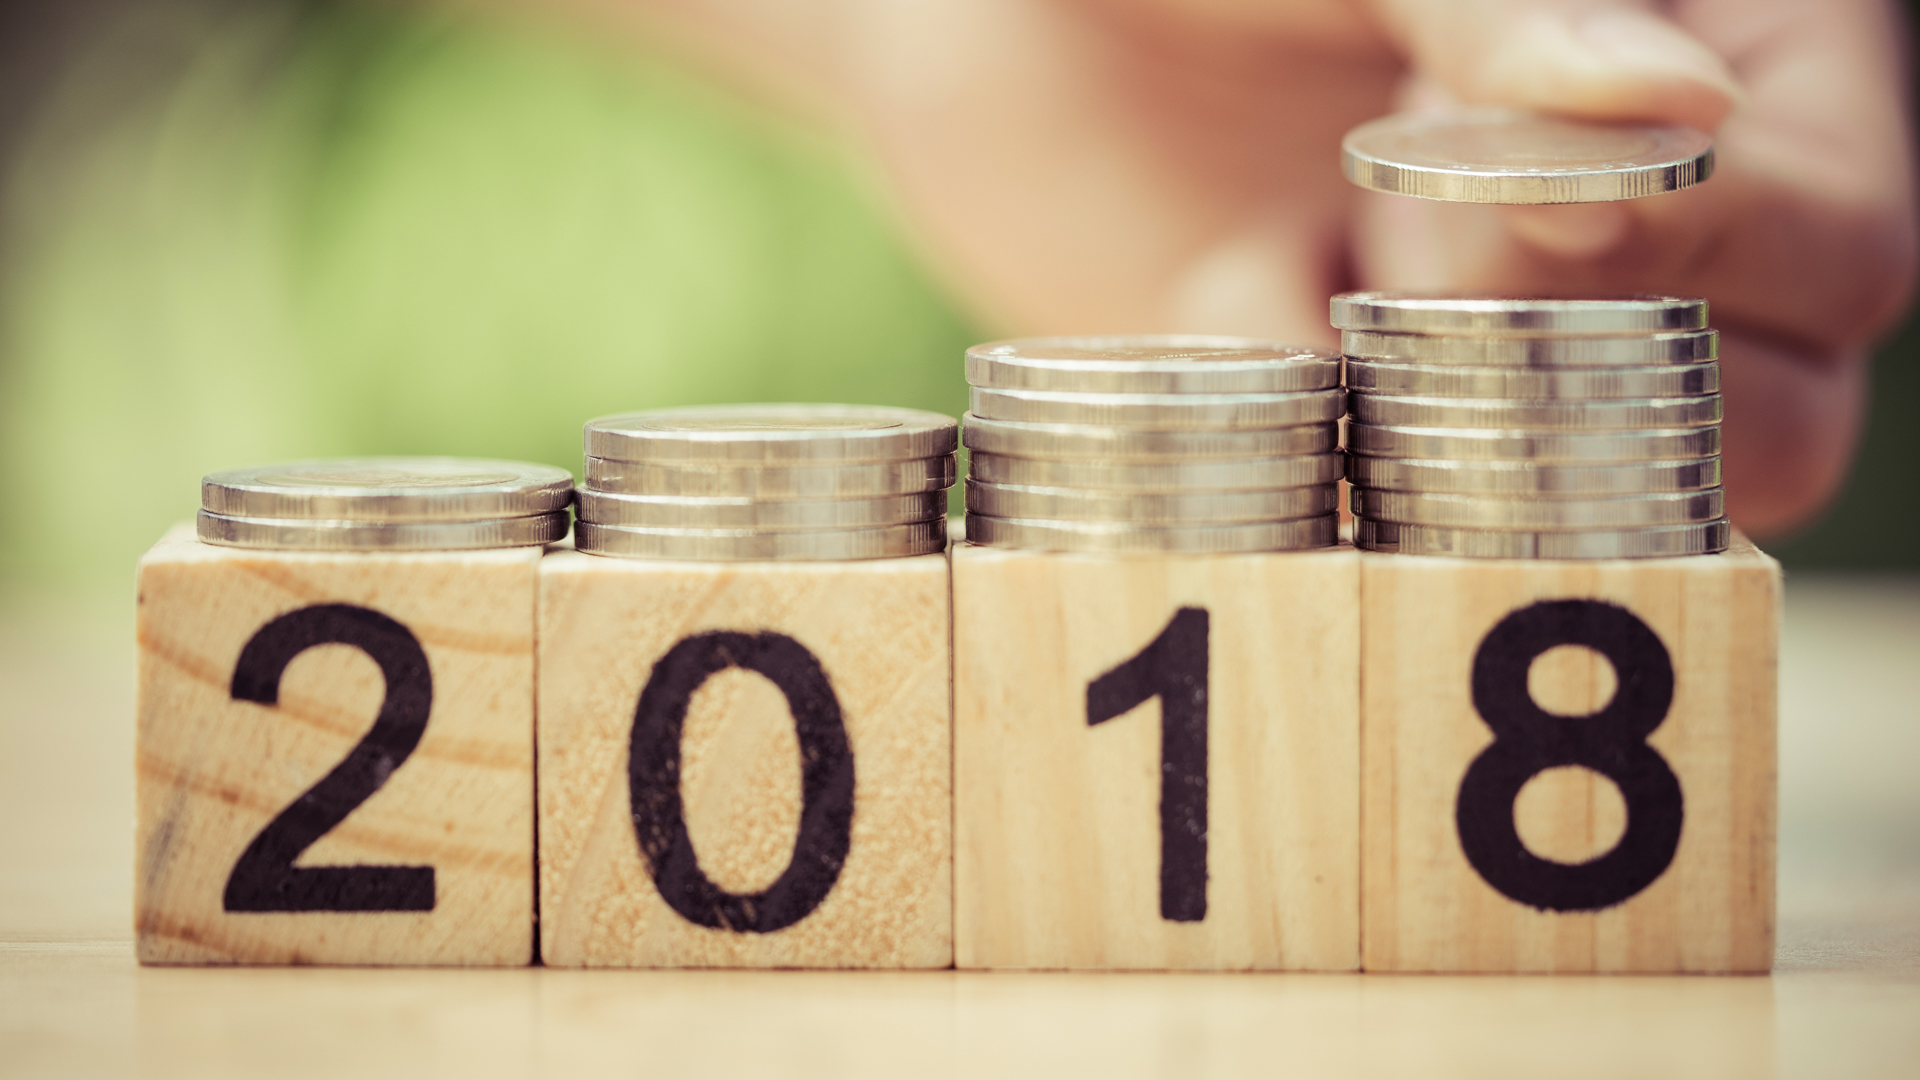 7 fastest growing stocks since 2000 gobankingrates hand putting coins to stack of coins on wooden block with text 2018 buycottarizona Gallery